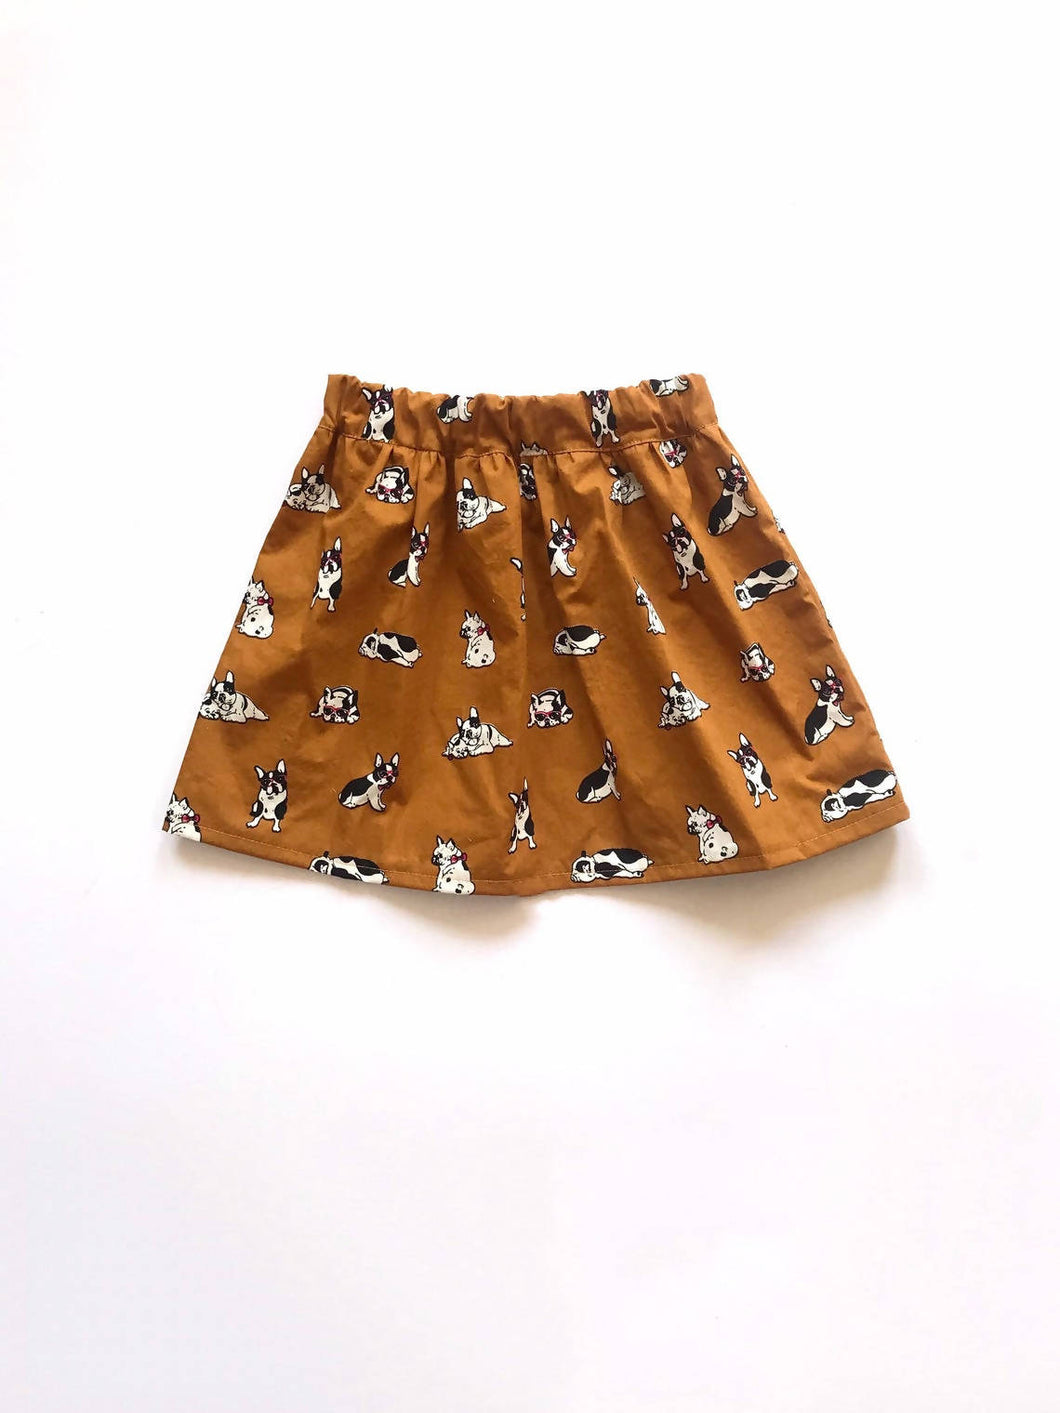 Childrens Skirt in Mustard Dog Print